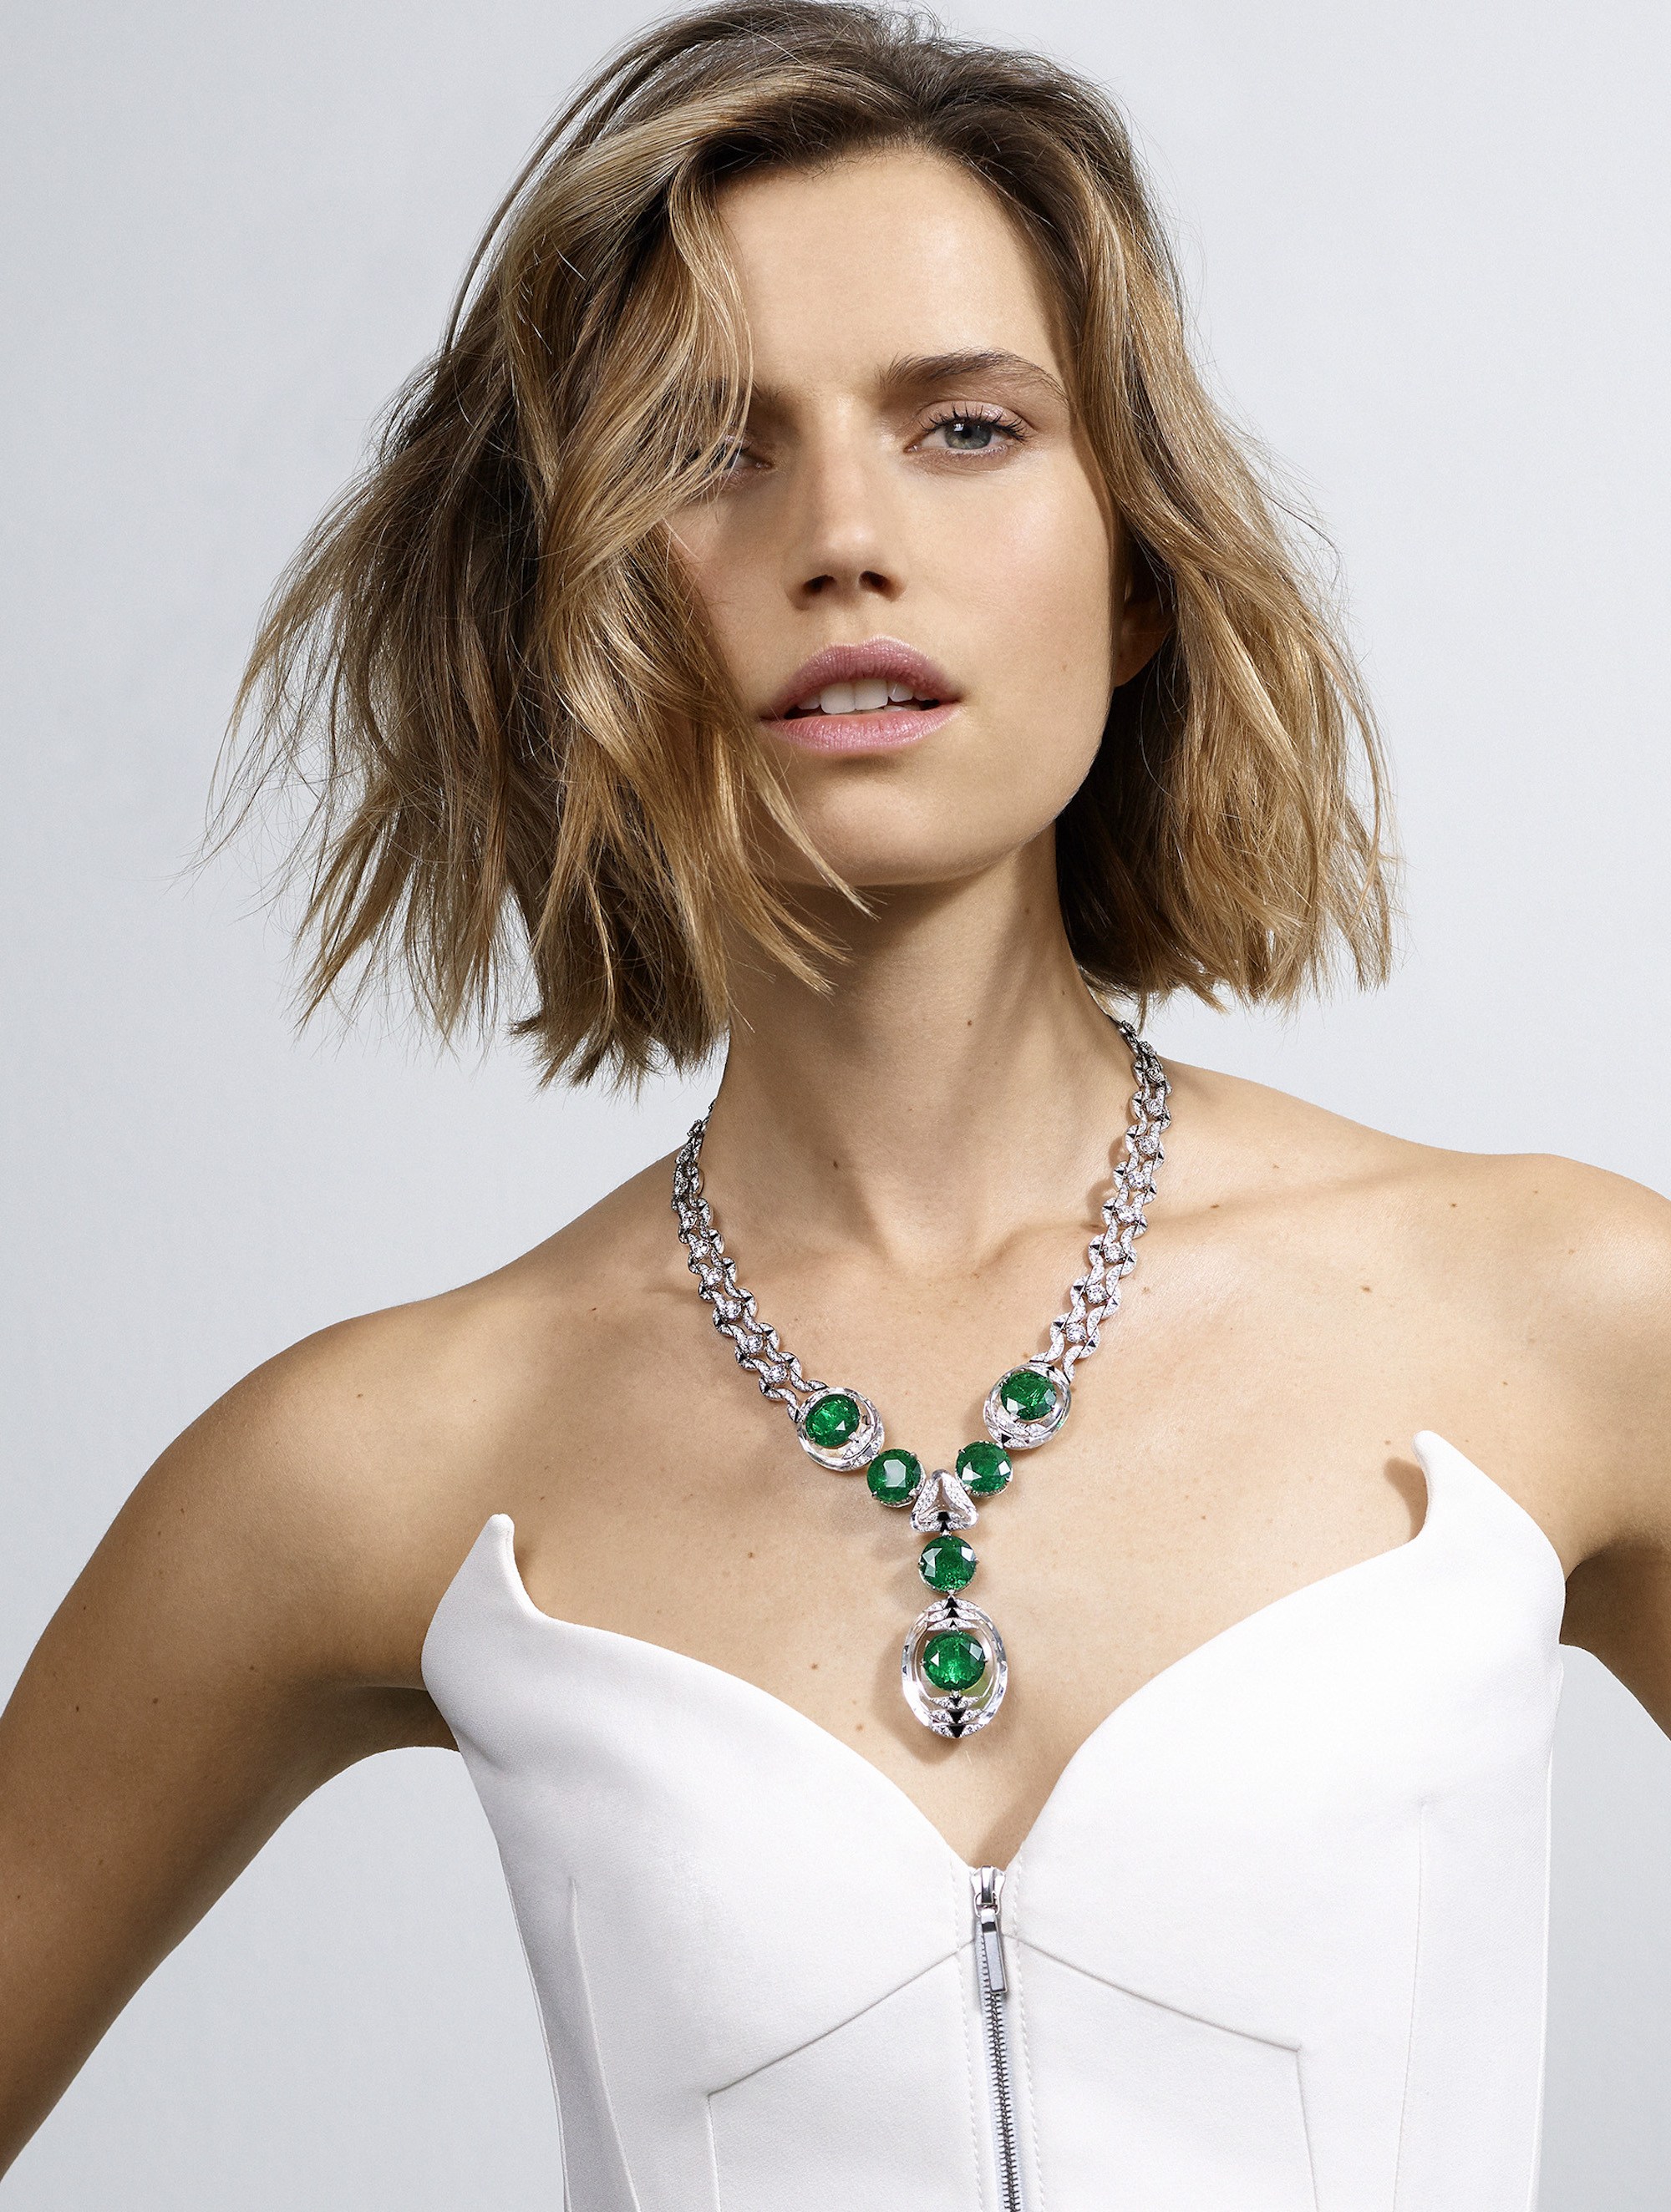 Cartier Magnitude high jewellery collection emerald necklace